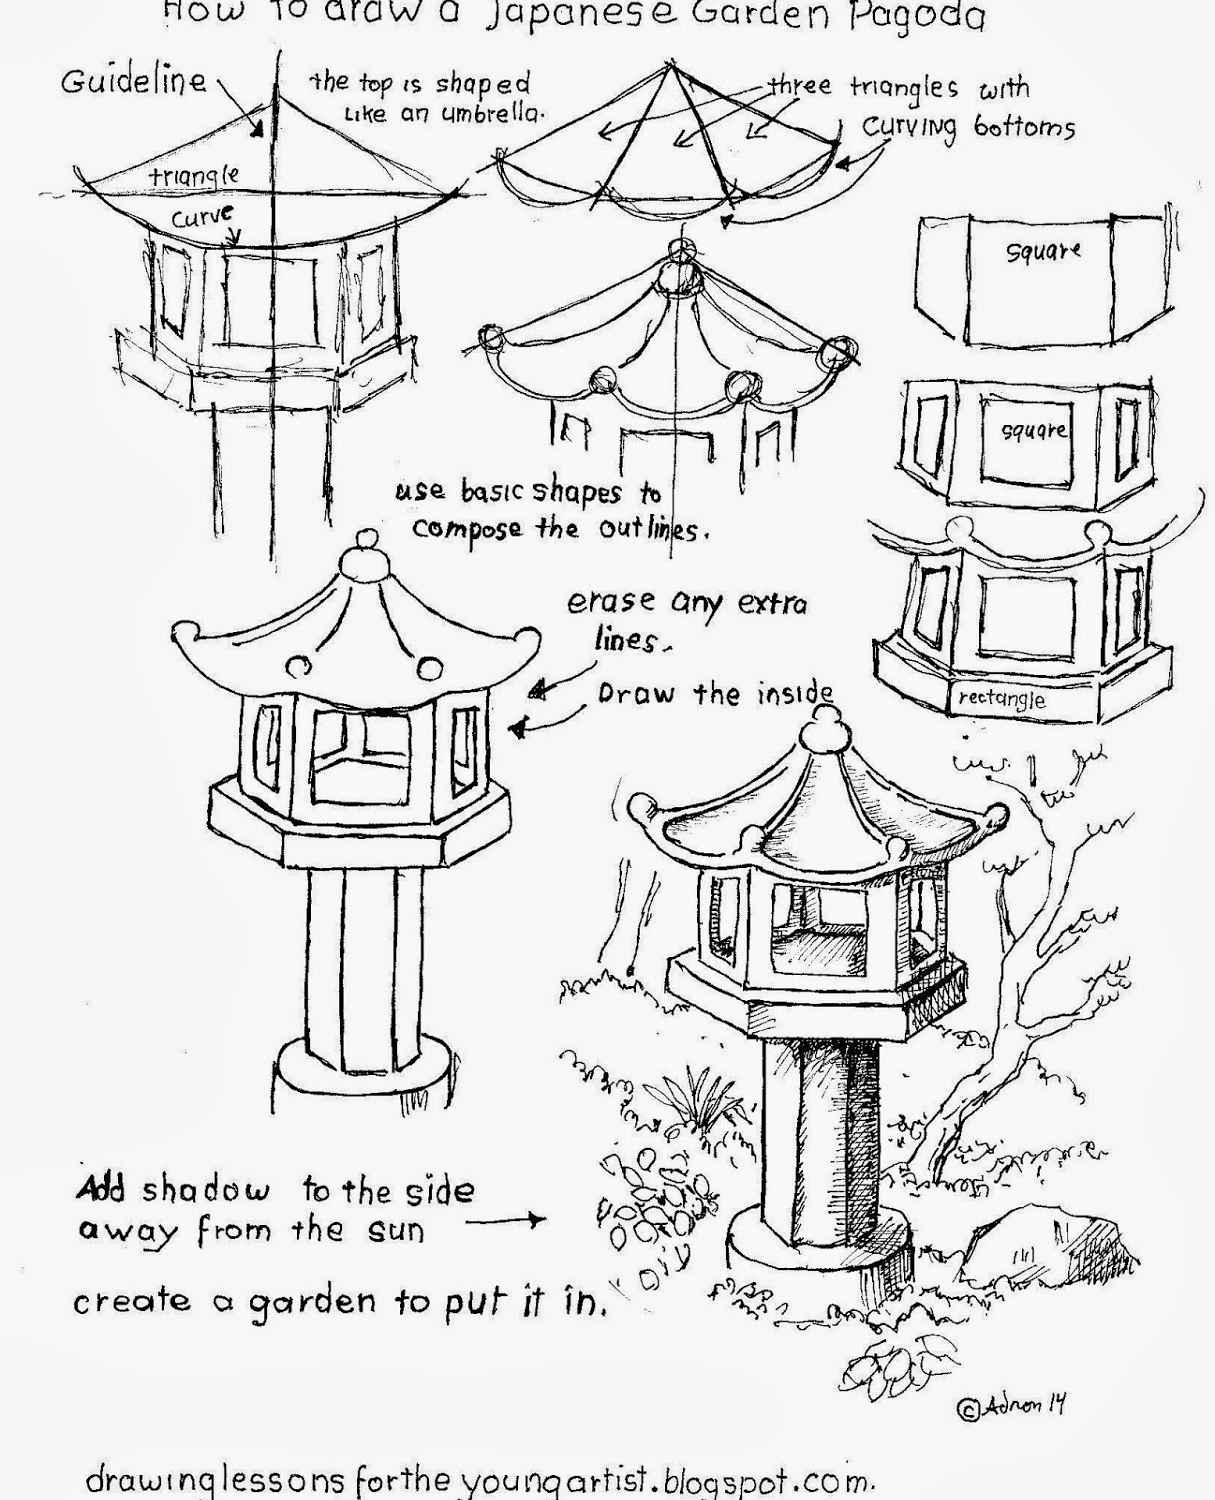 1215x1500 How To Draw A Japanese Garden Pagoda Worksheet, Japanese Garden